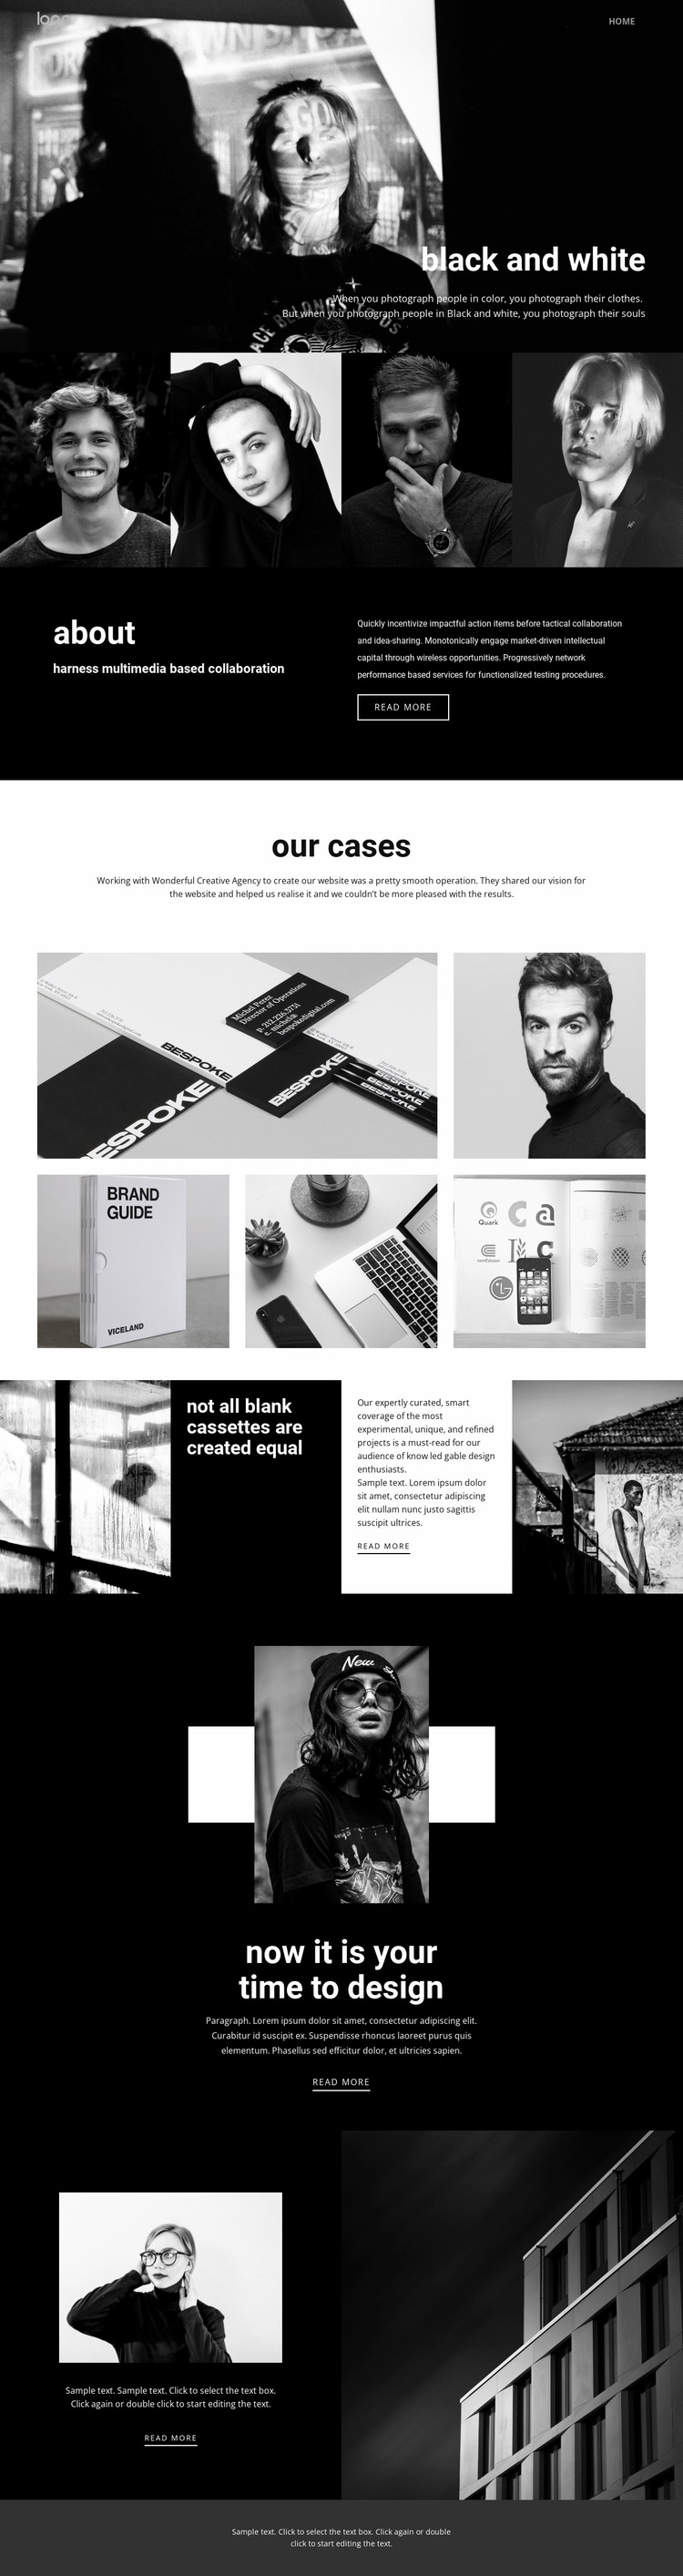 Black and white colors of art Website Mockup